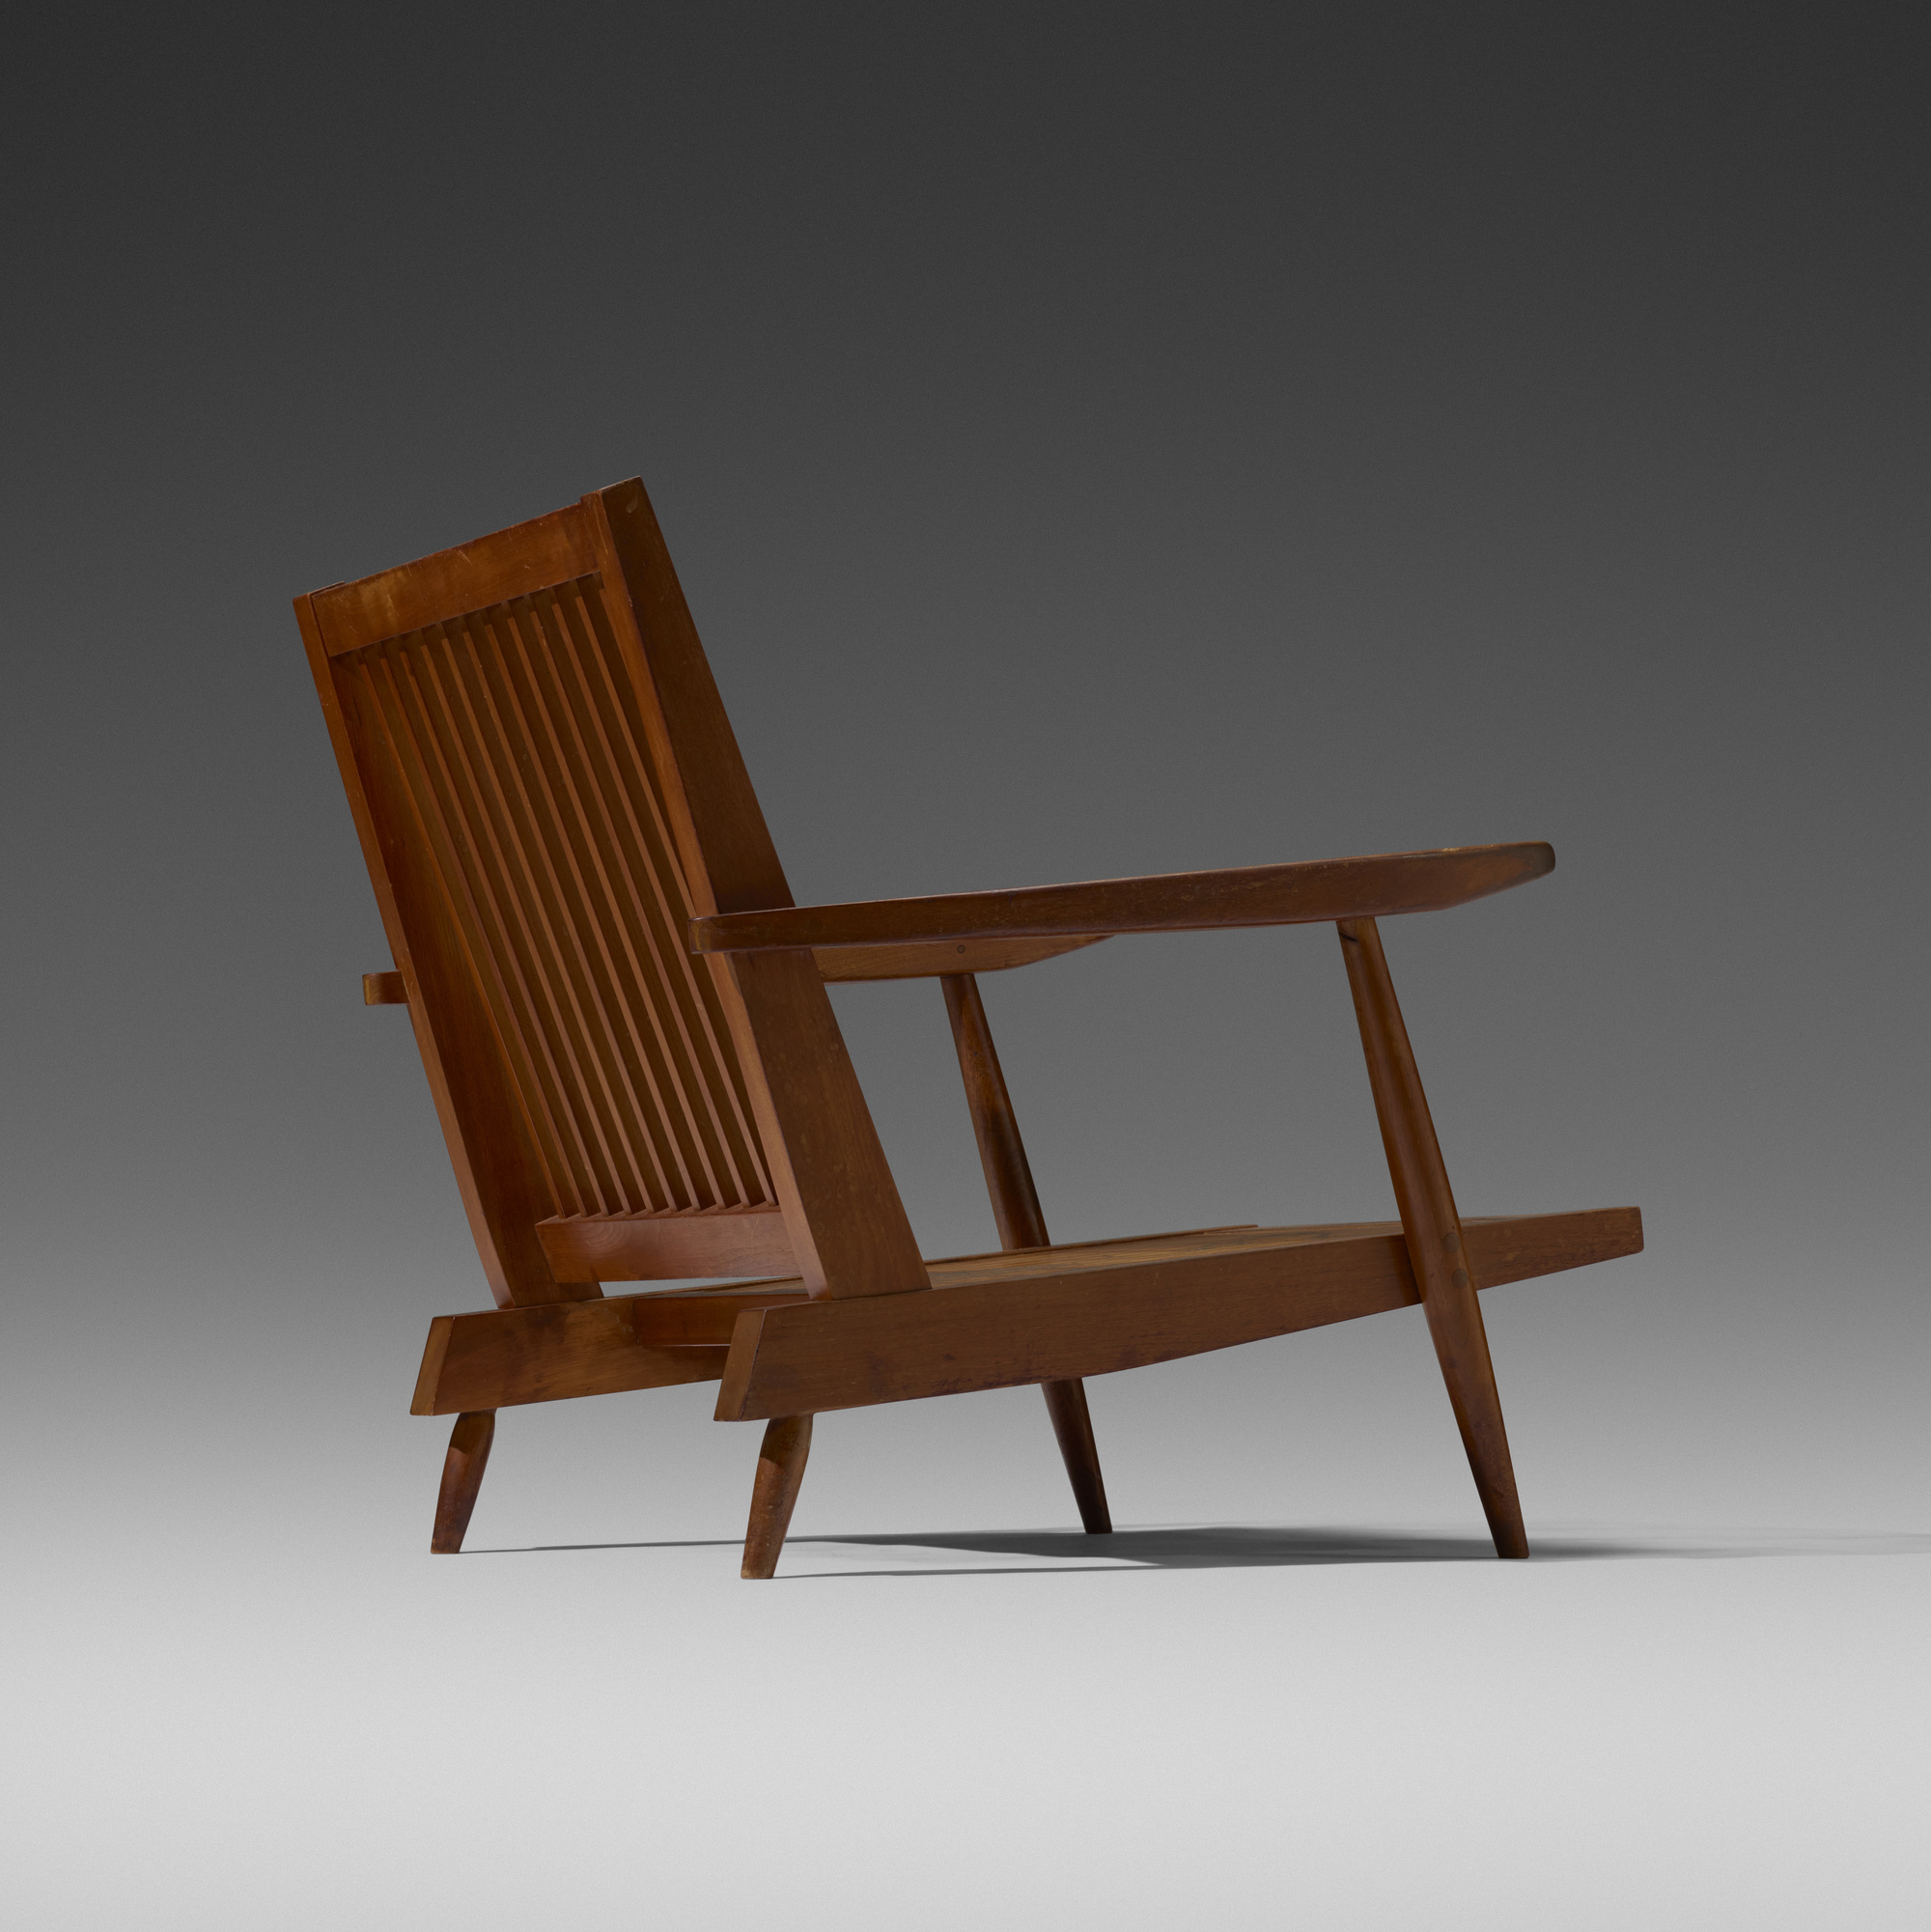 Cushion Chair 238 George Nakashima Cushion Chairs With Arms Pair Important